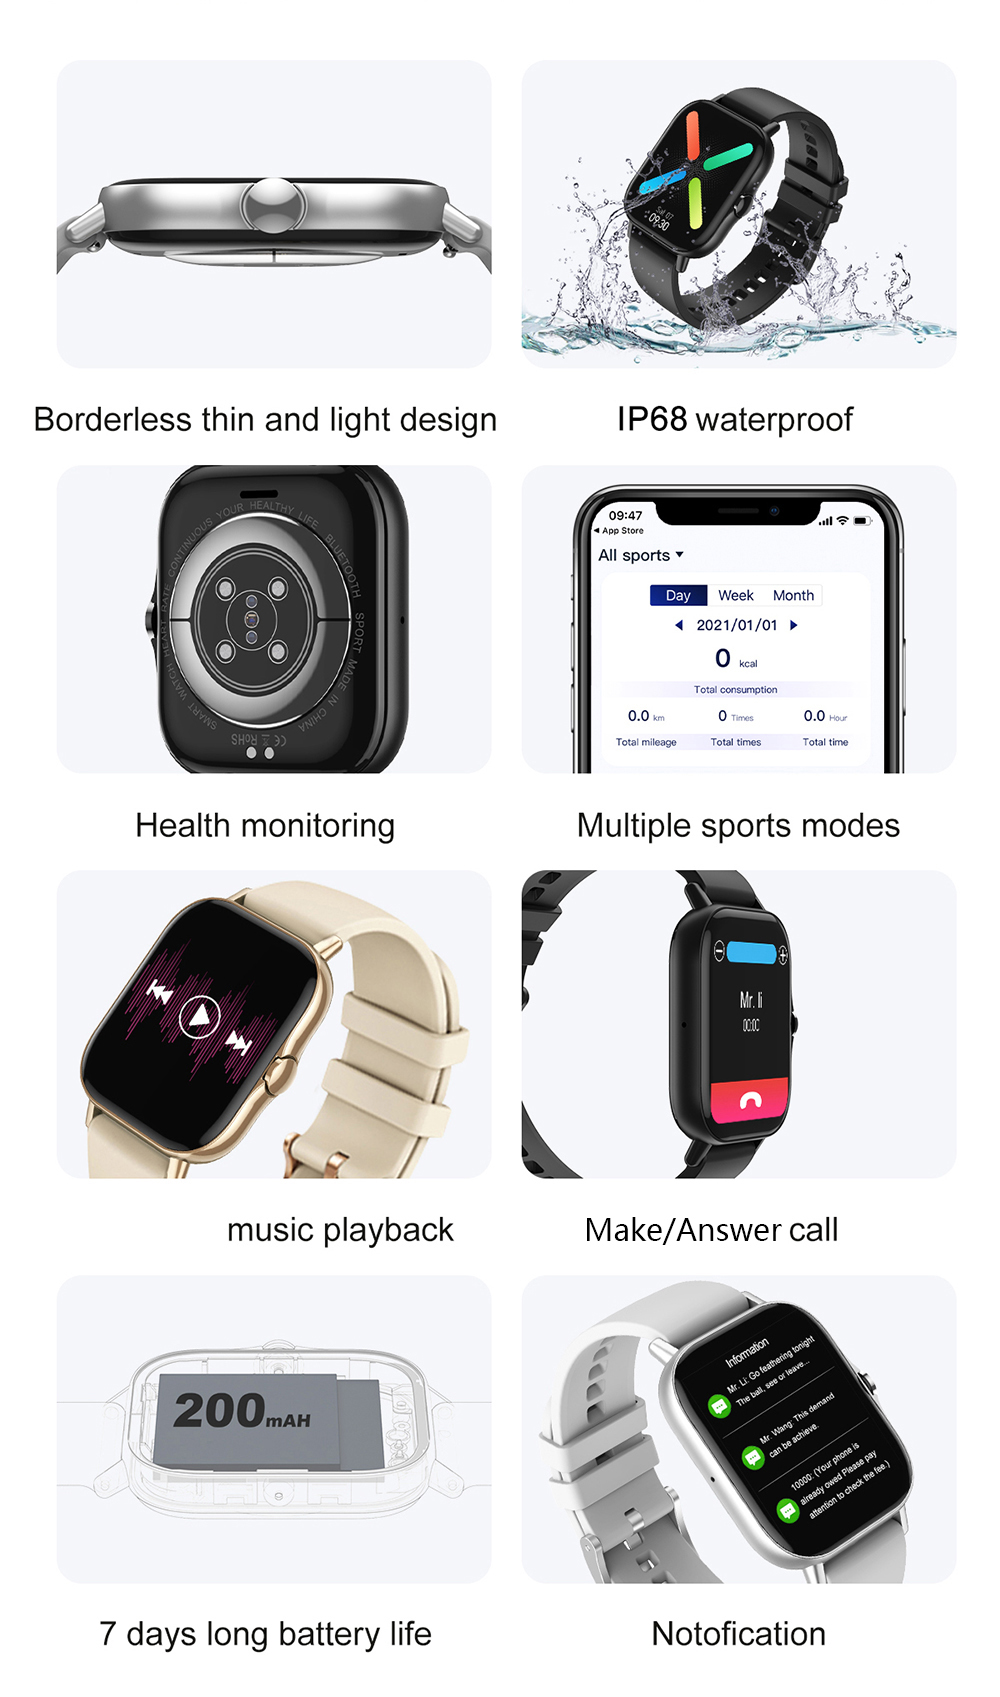 H7cf233959df6419481f5cc7ecc0f0b10H For Xiaomi IOS Apple Phone 1.78inch Smart Watch Android Men IP68 Waterproof Full Touch Woman Smartwatch Women 2021 Answer Call